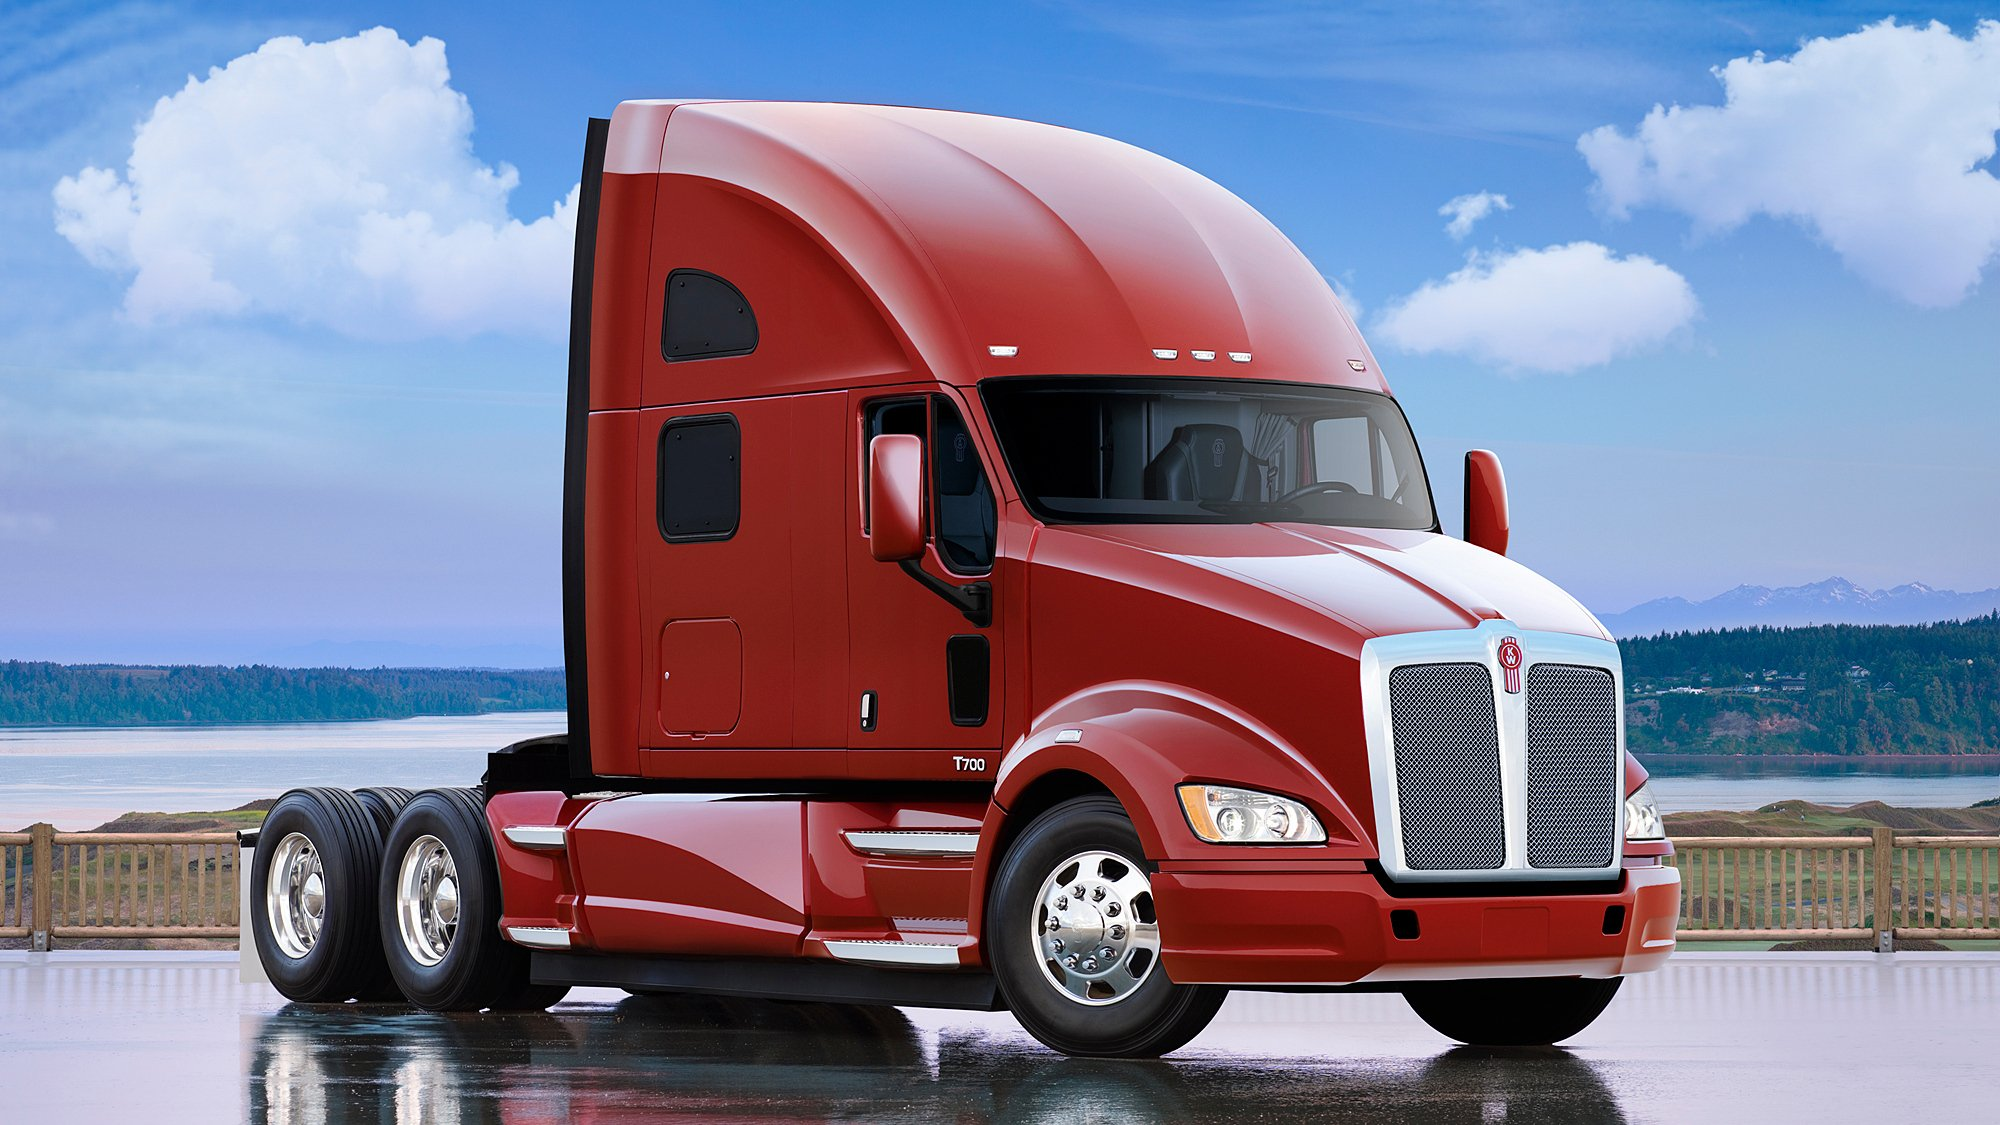 2017 Kenworth T680 >> 2010 Kenworth T700 semi tractor transport wallpaper | 2000x1125 | 564100 | WallpaperUP